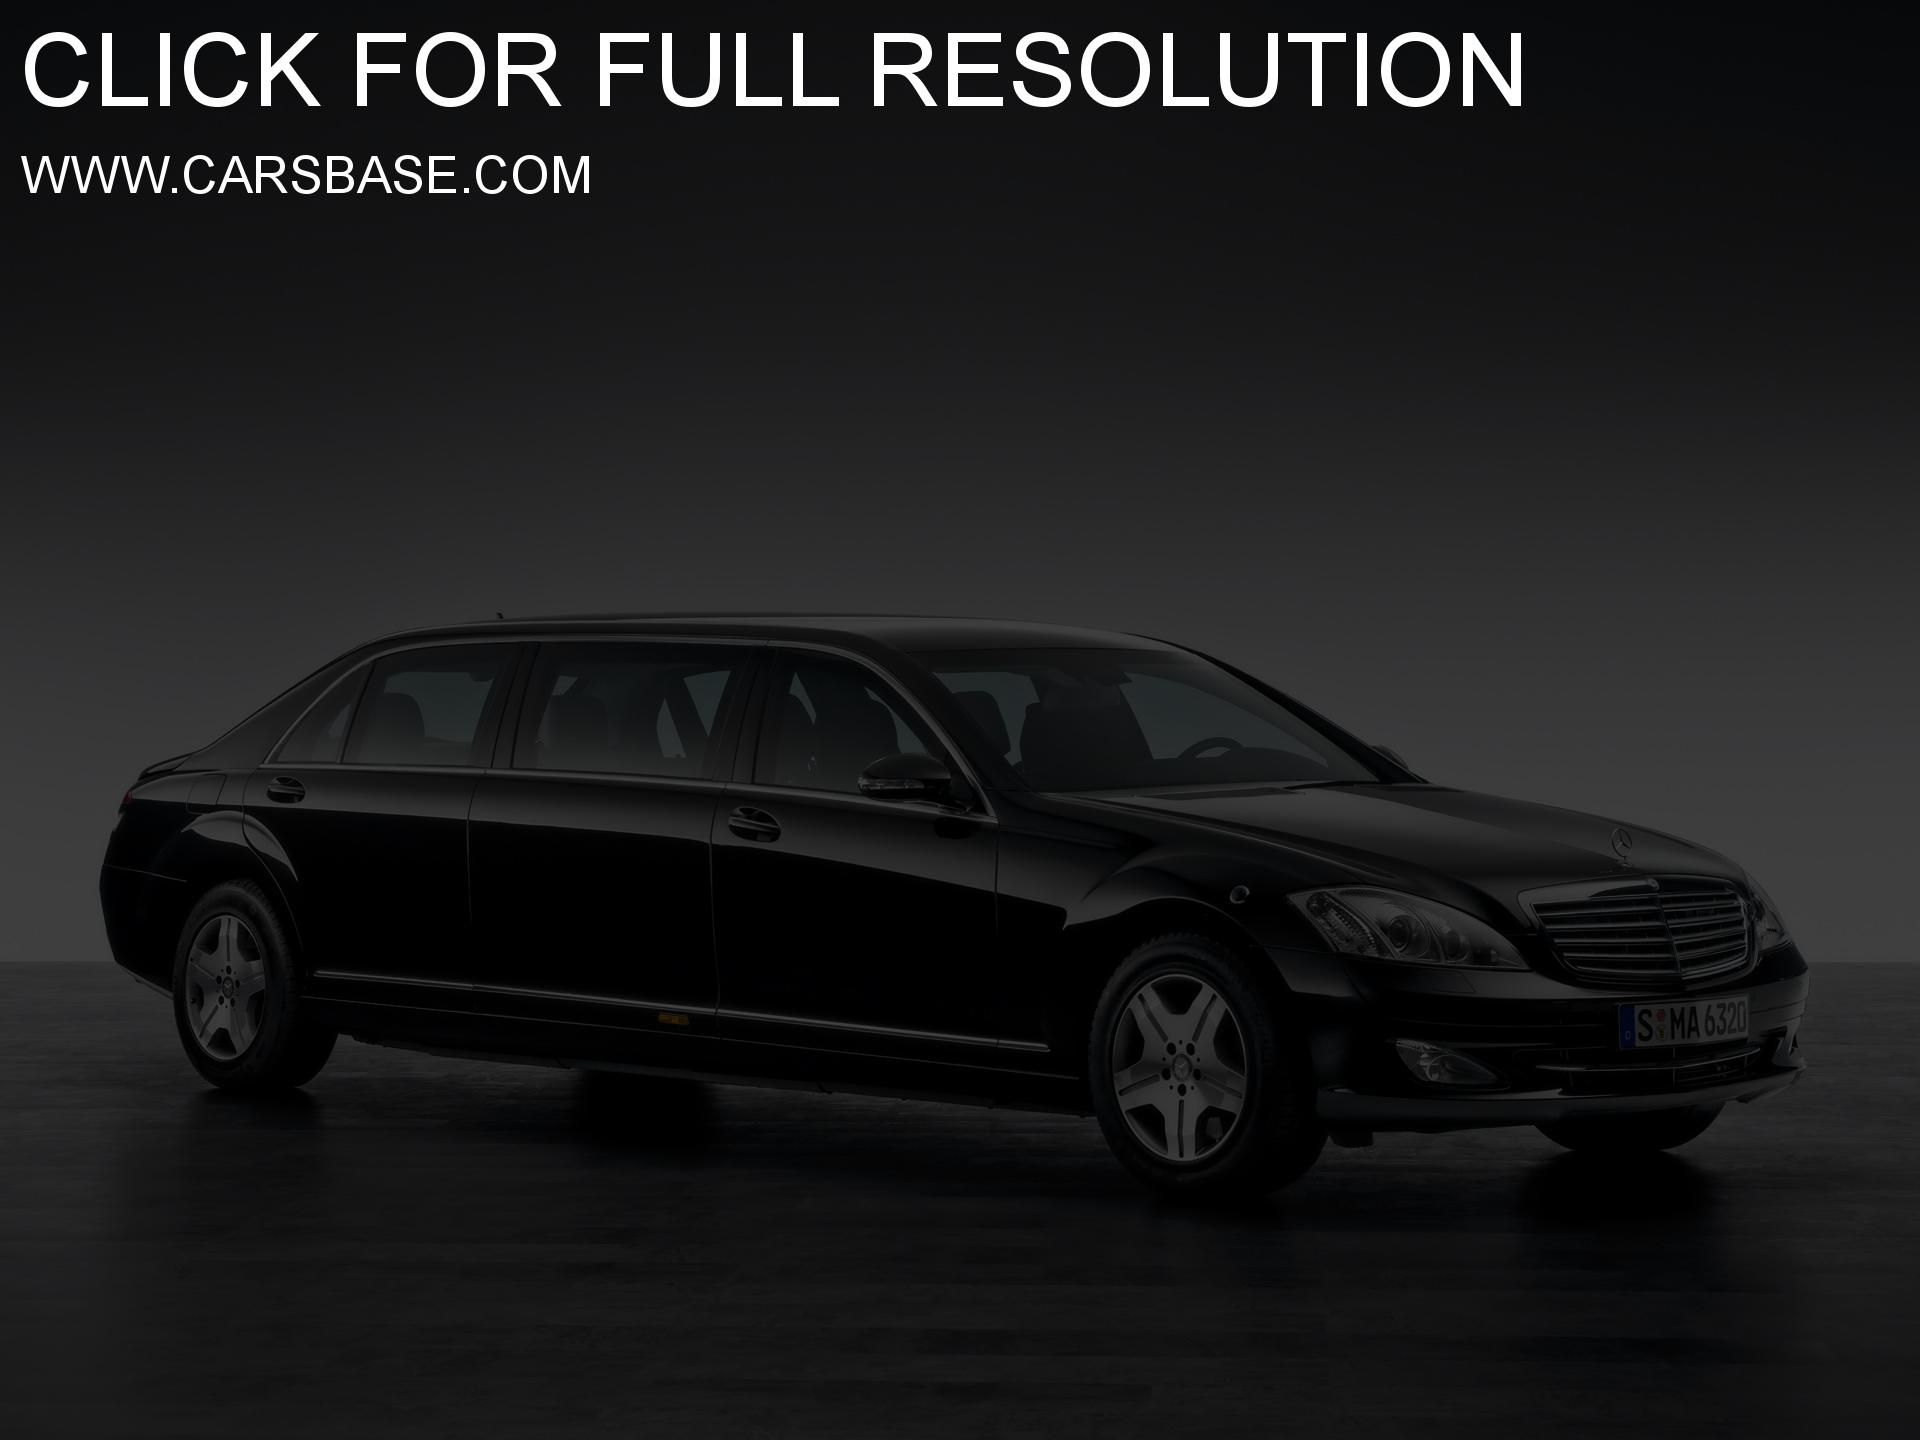 Mercedes Benz S 600 Pullman Guard Limousine photos Gallery